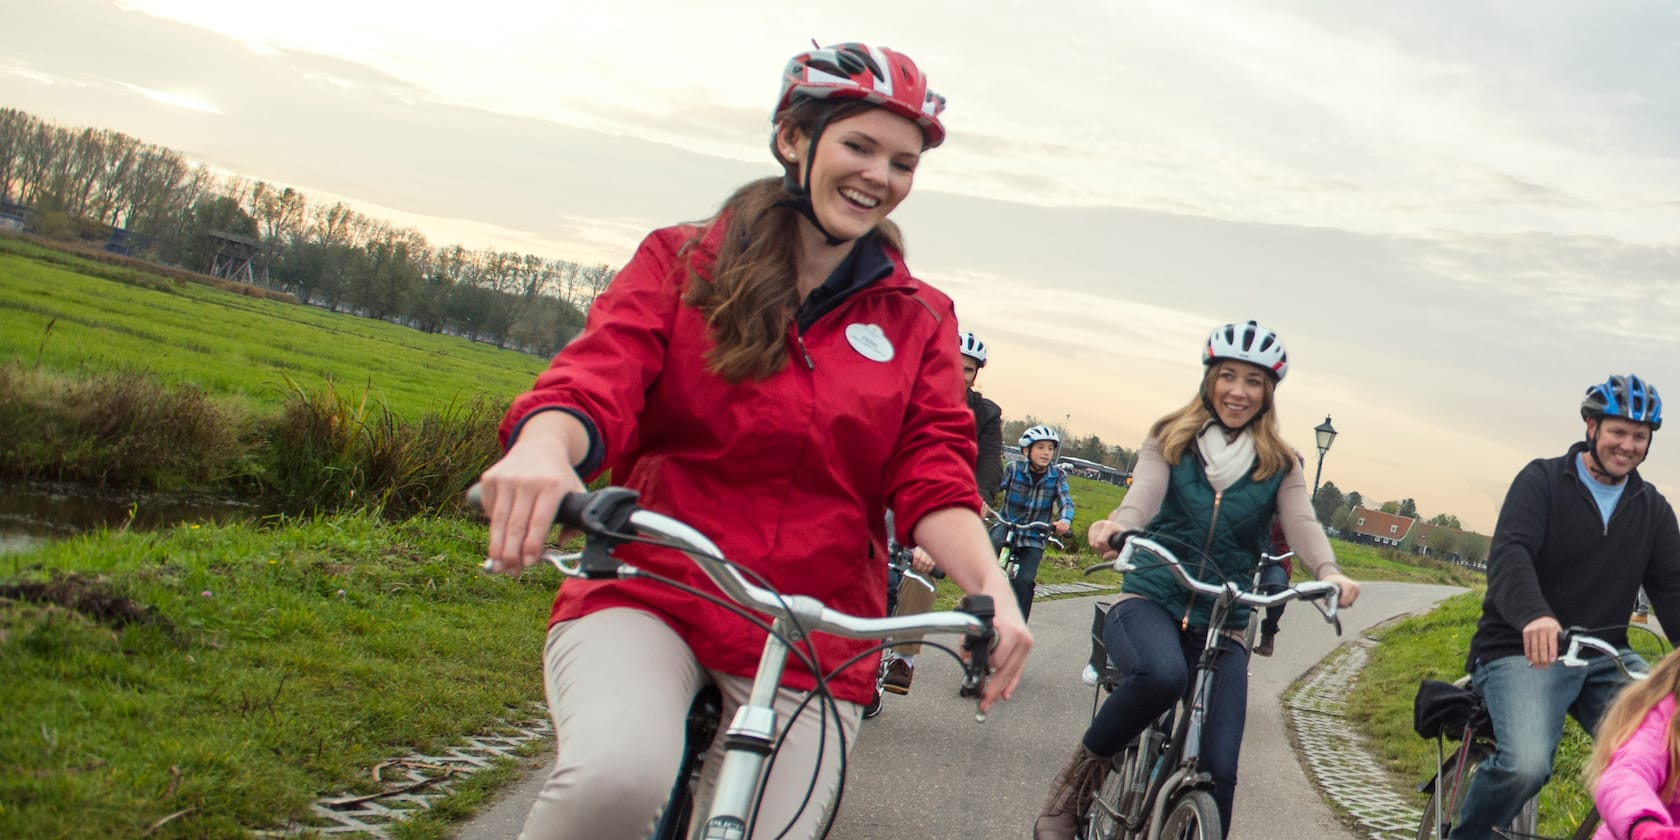 A female Adventure Guide and several Guests wearing helmets, bike along a path in Rüdesheim